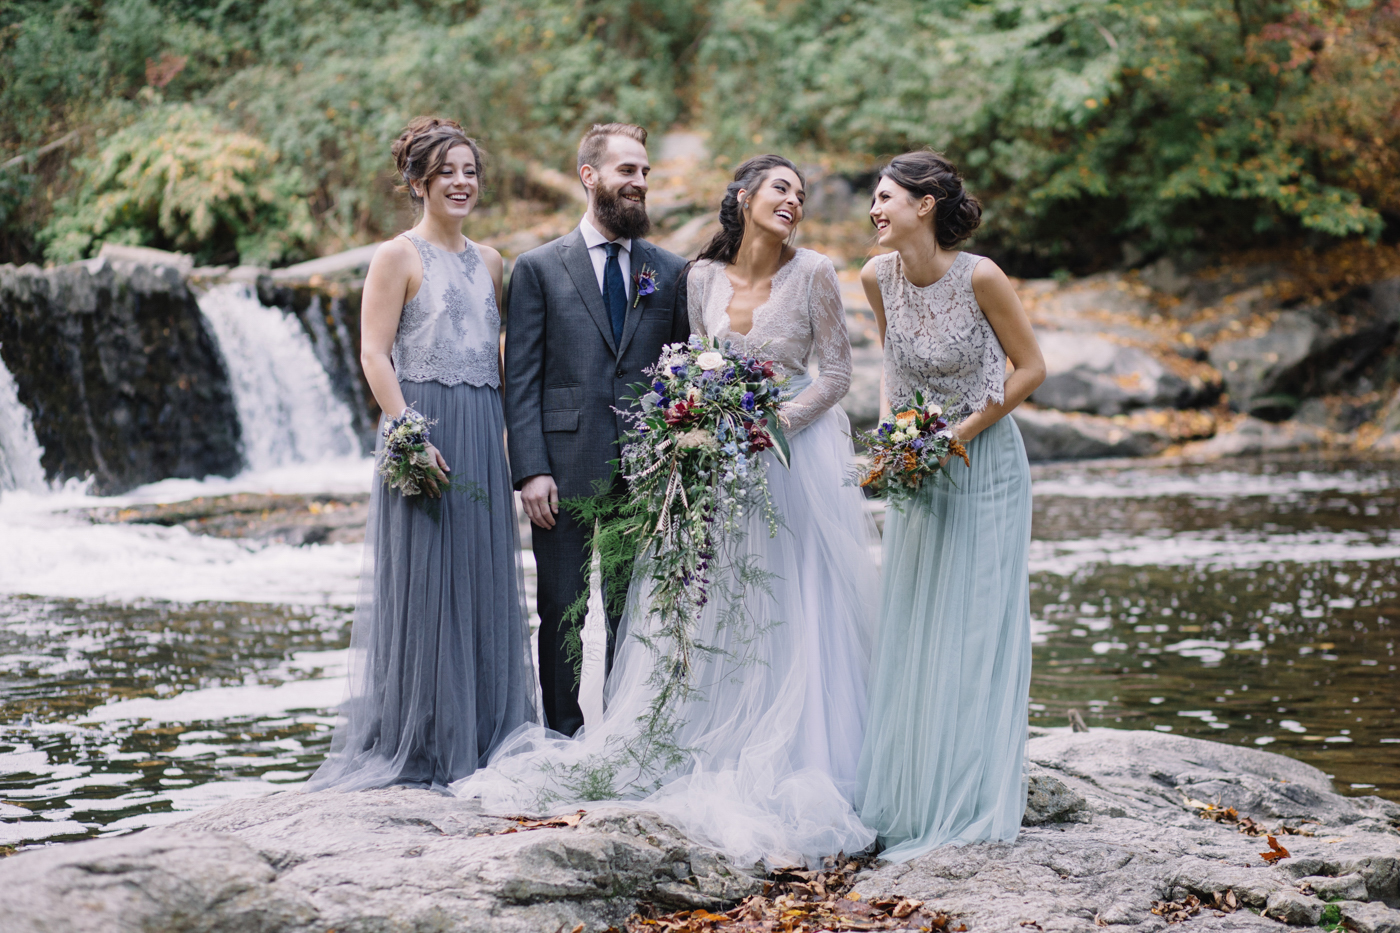 philadelphia-wedding-photographer-valley-green-inn-boho-geode-whimsical-philly-waterfall-weddings-photography-fine-art-63.jpg